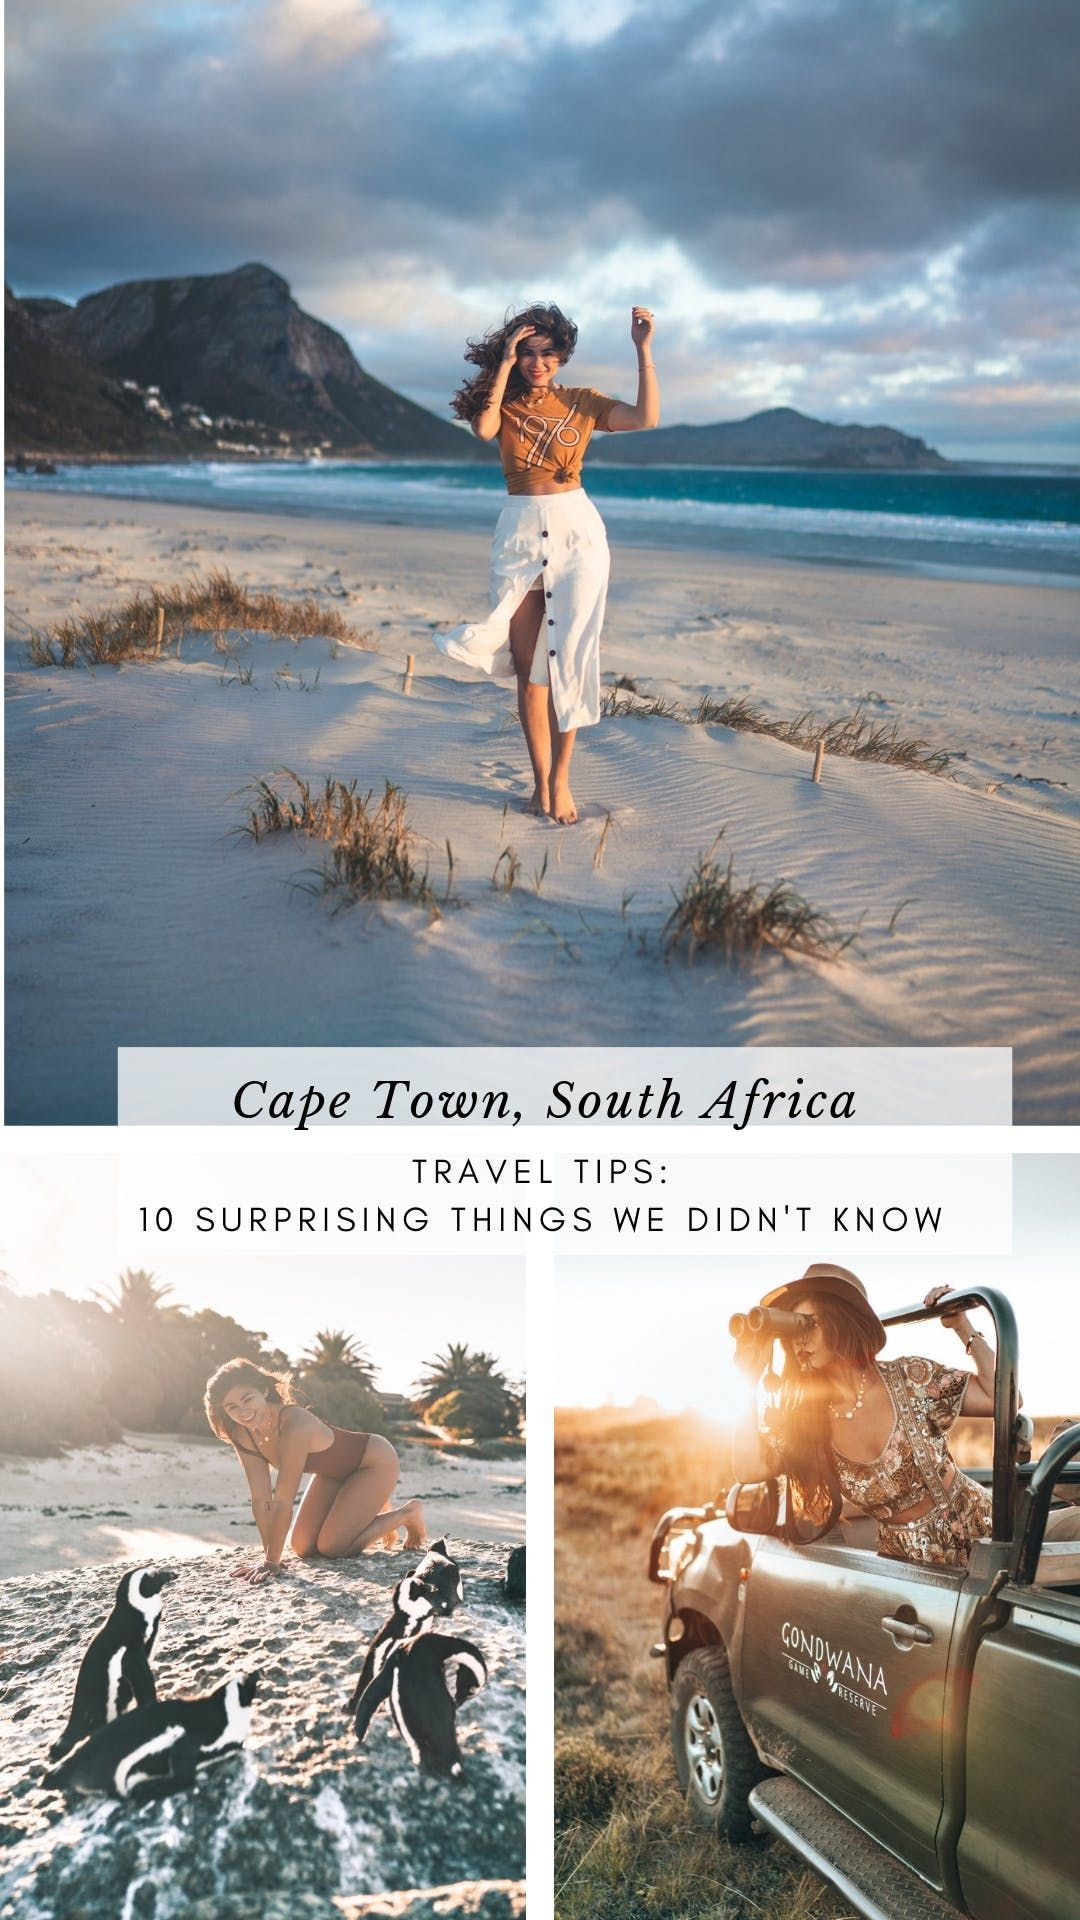 10 Surprising Things we Learned Traveling to Cape Town, South Africa   Away Lands - Everything you need to know before planning a trip and traveling to Cape Town. Read on for Travel tips on budgeting for meals, safety, activities, and everything in between - Travel Guide #capetown #travelguide